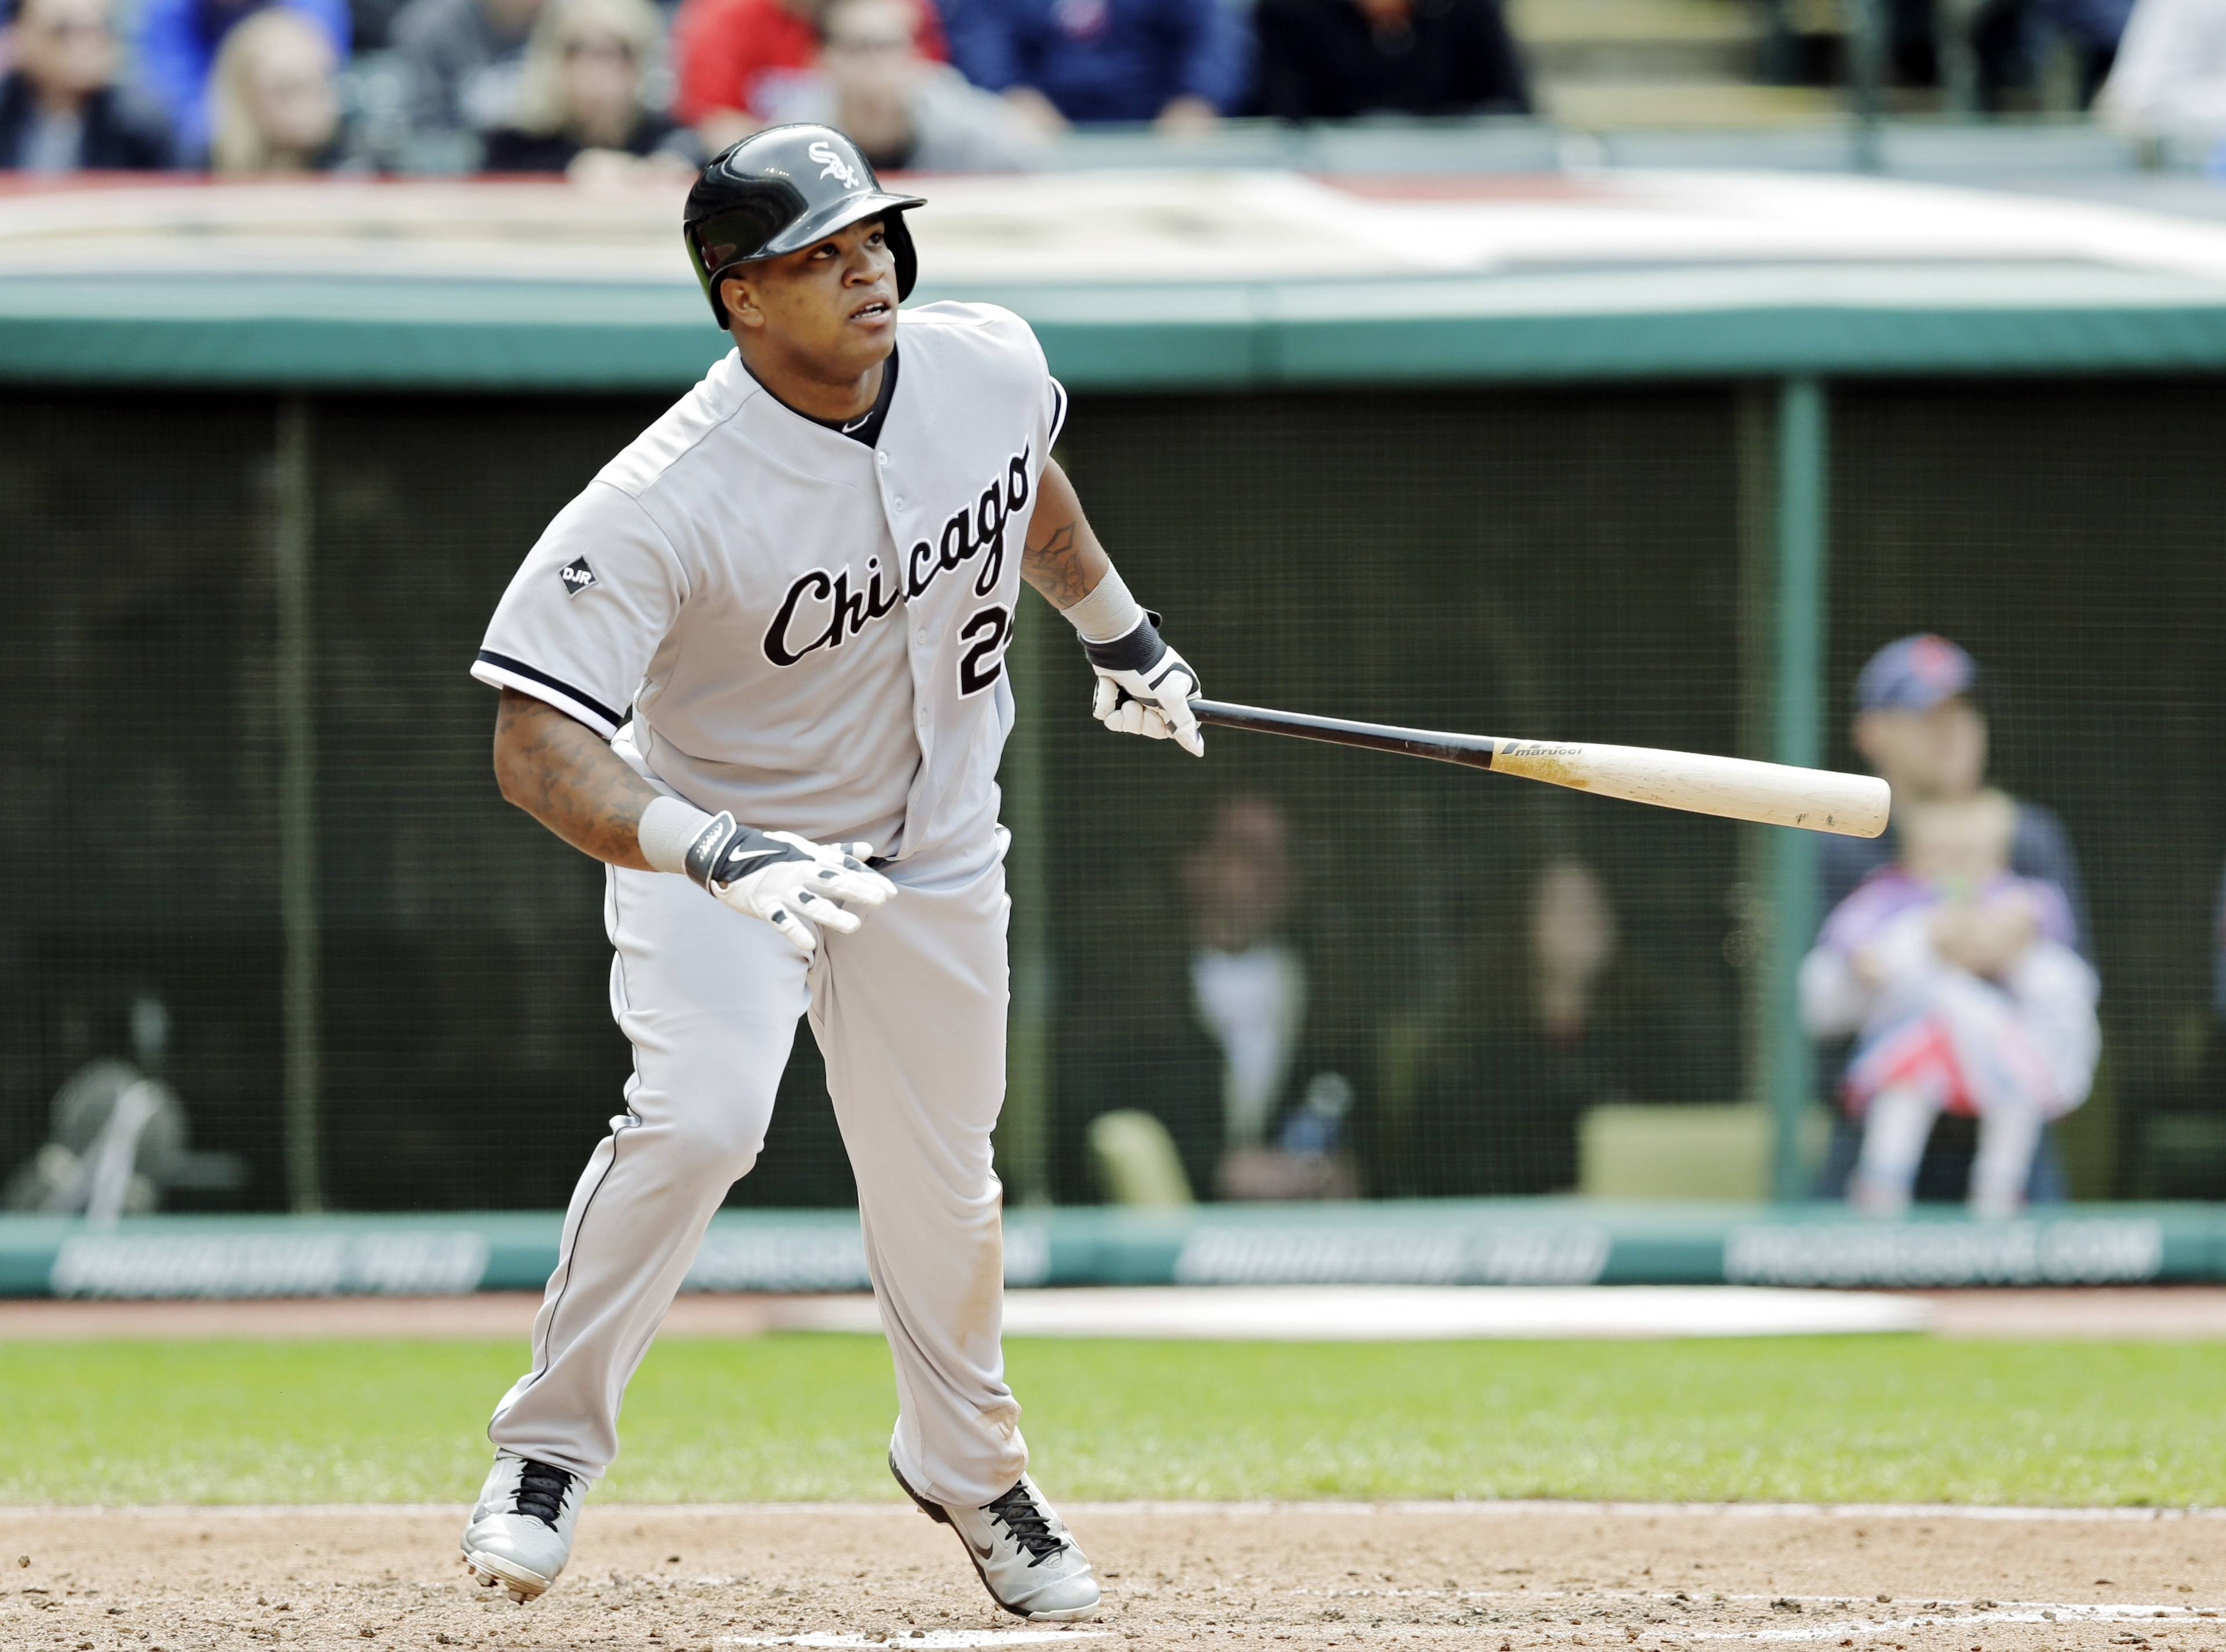 White Sox slugger Dayan Viciedo watches his three-run home run off Cleveland Indians relief pitcher John Axford in the ninth inning of a baseball game Sunday, May 4, 2014, in Cleveland. Viciedo's homer gave the White sox a 4-3 win.